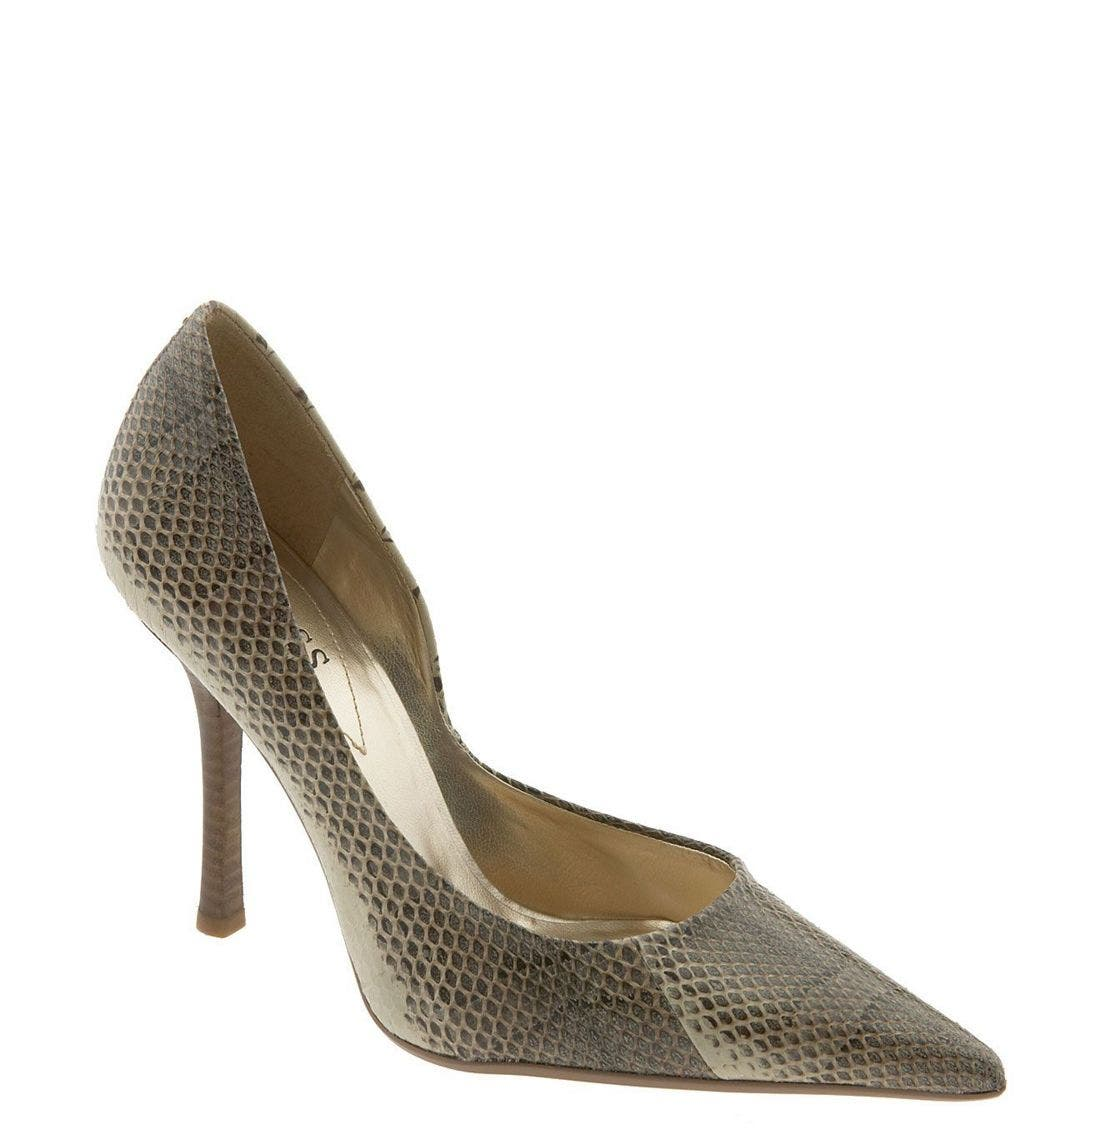 'Carrie' Patent Leather Pump,                             Main thumbnail 1, color,                             NSS